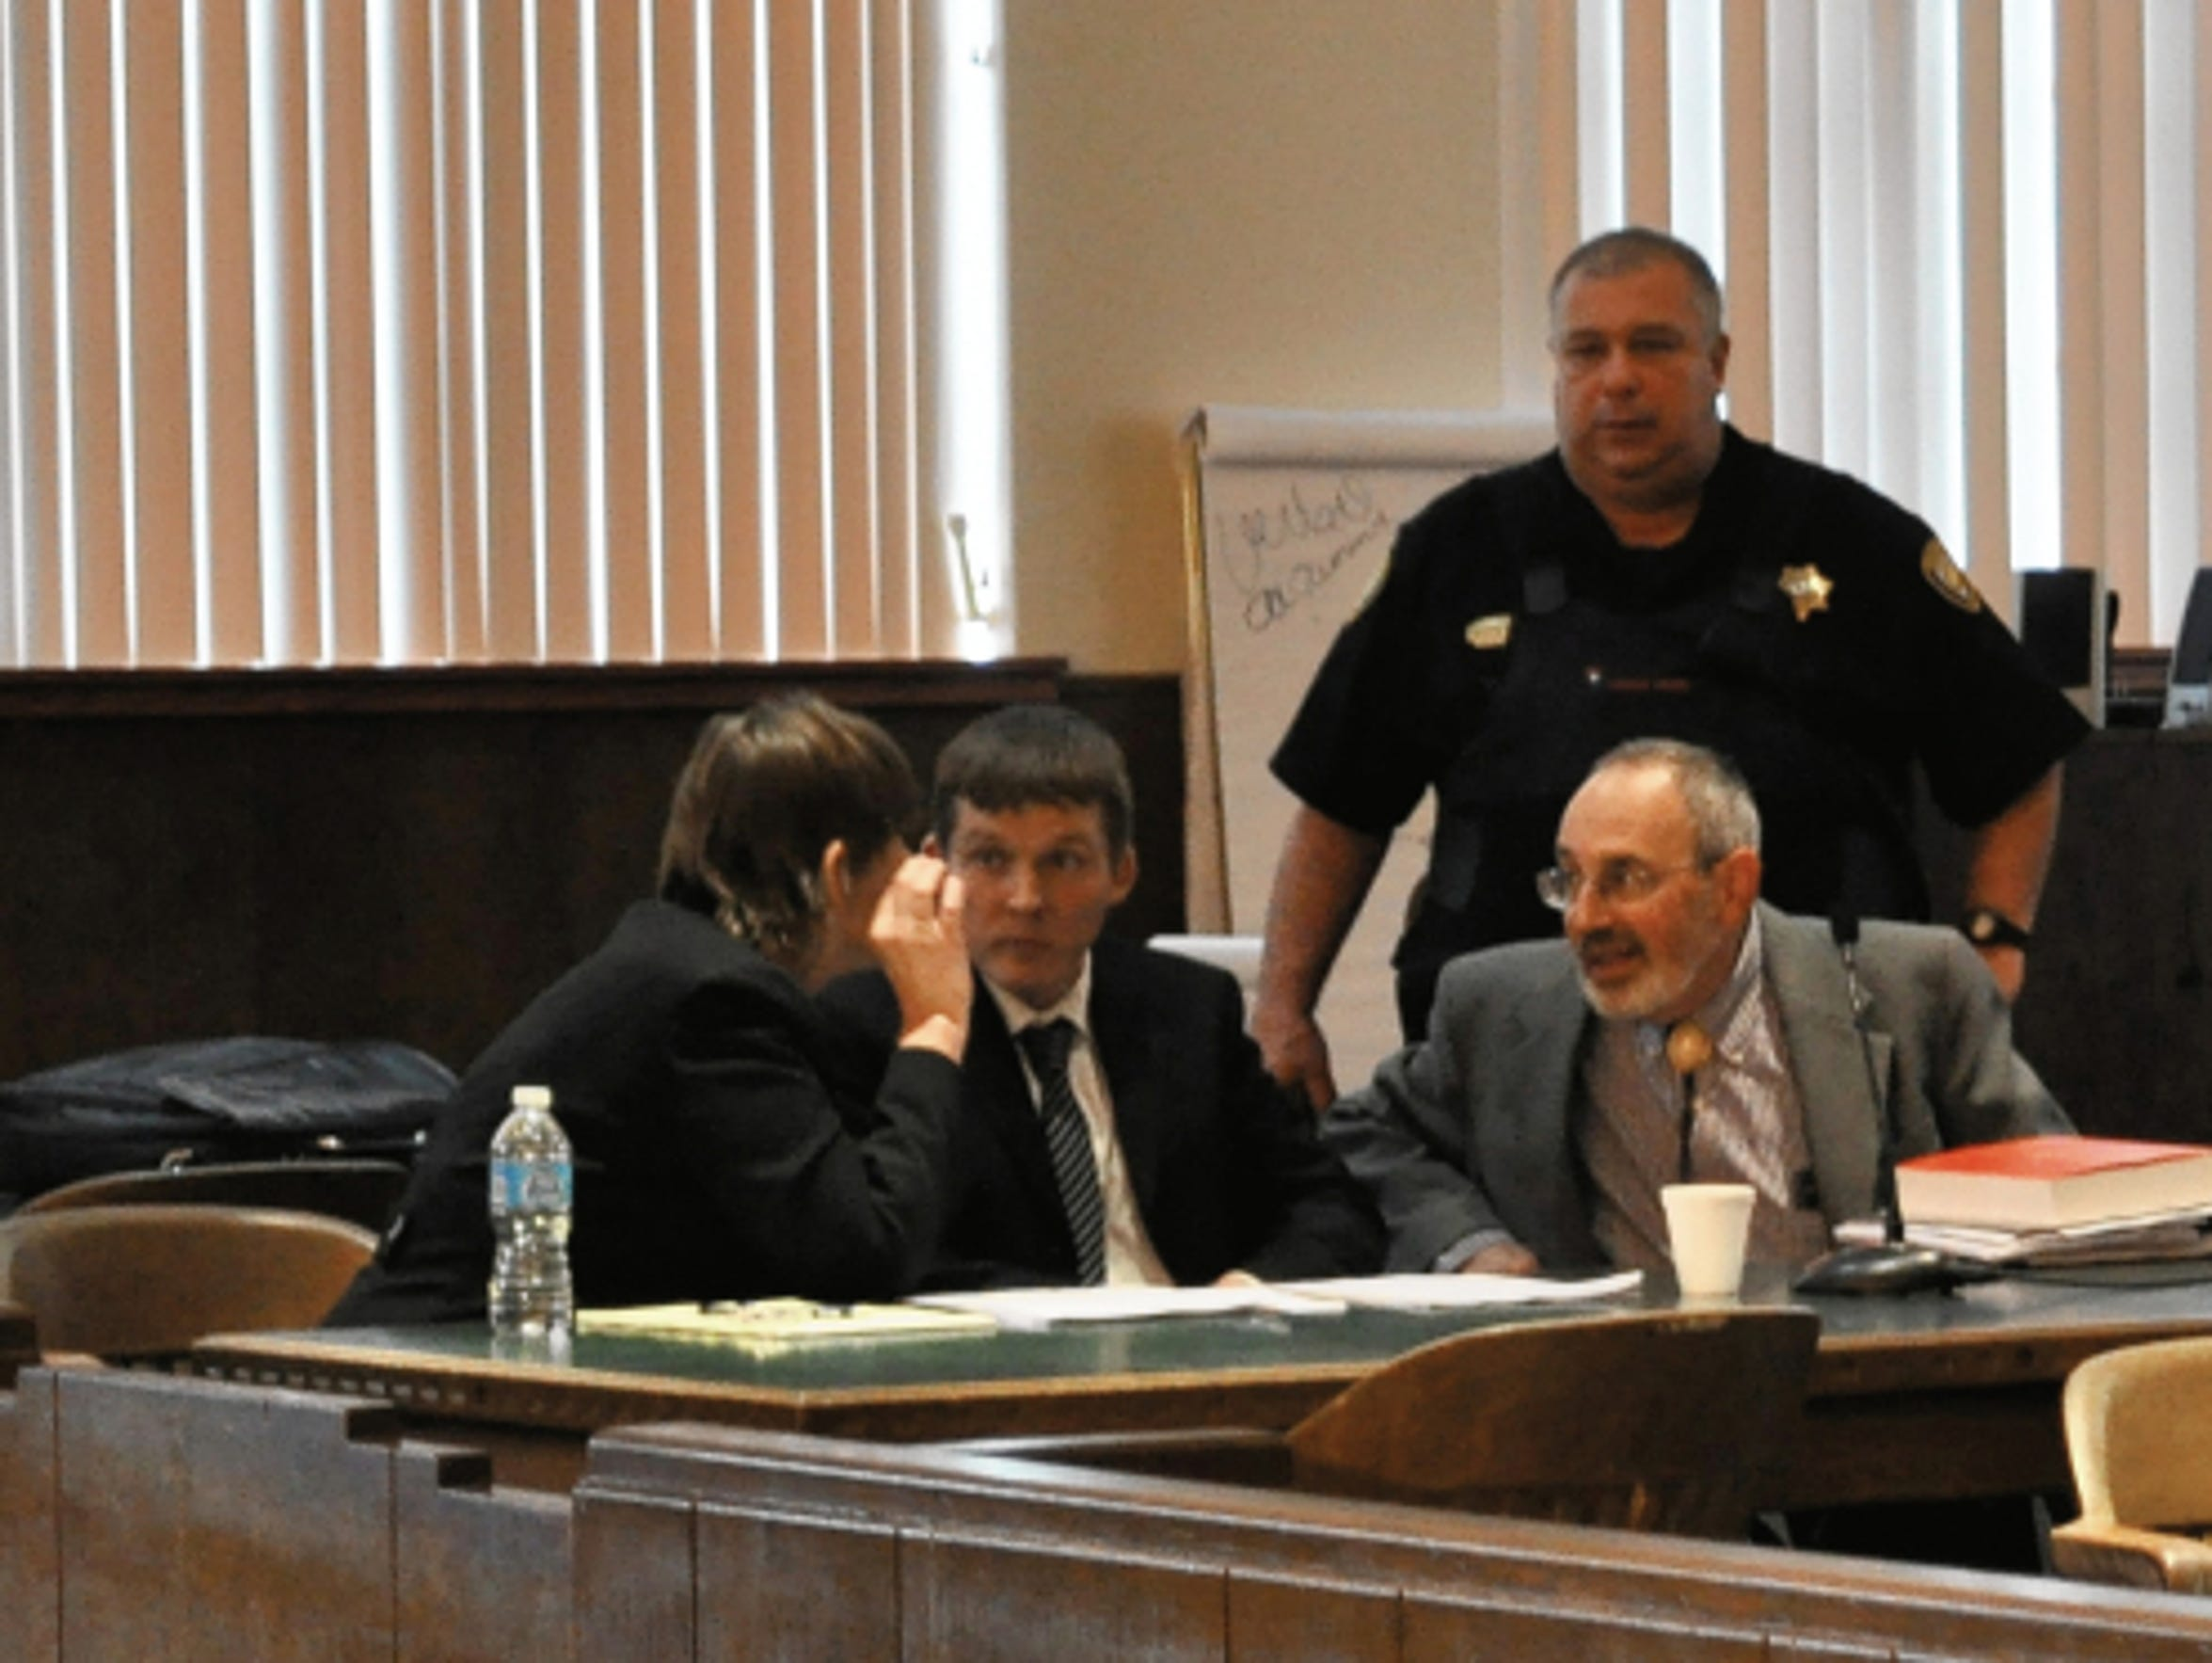 Robert Earley (center), 33, consults with his defense